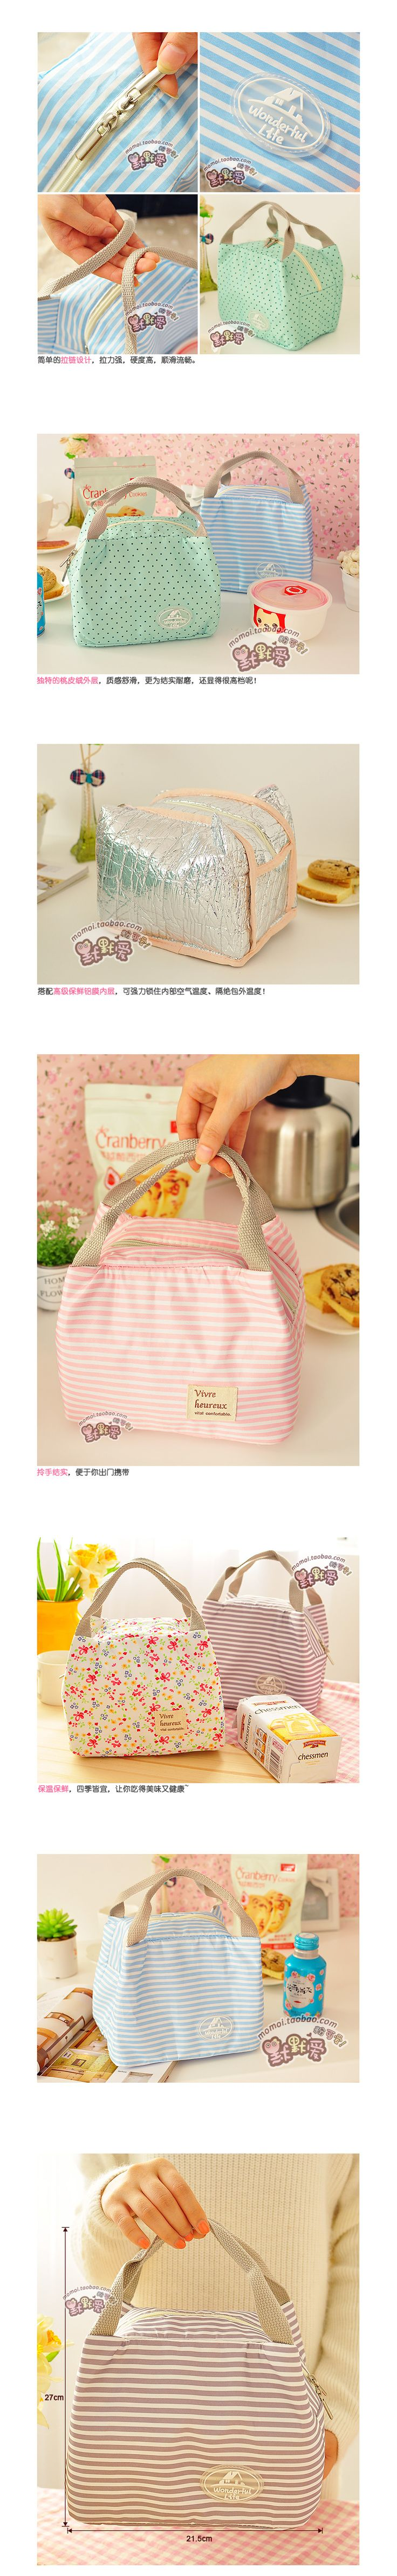 Aliexpress.com : Buy Japanese Style Peach Skin Thermal Insulated Lunch Bag Keep Food Warm Cooler Waterproof Picnic Travel Tote Lunch Bags For Women from Reliable bag gel suppliers on Cashin Fashions. | Alibaba Group